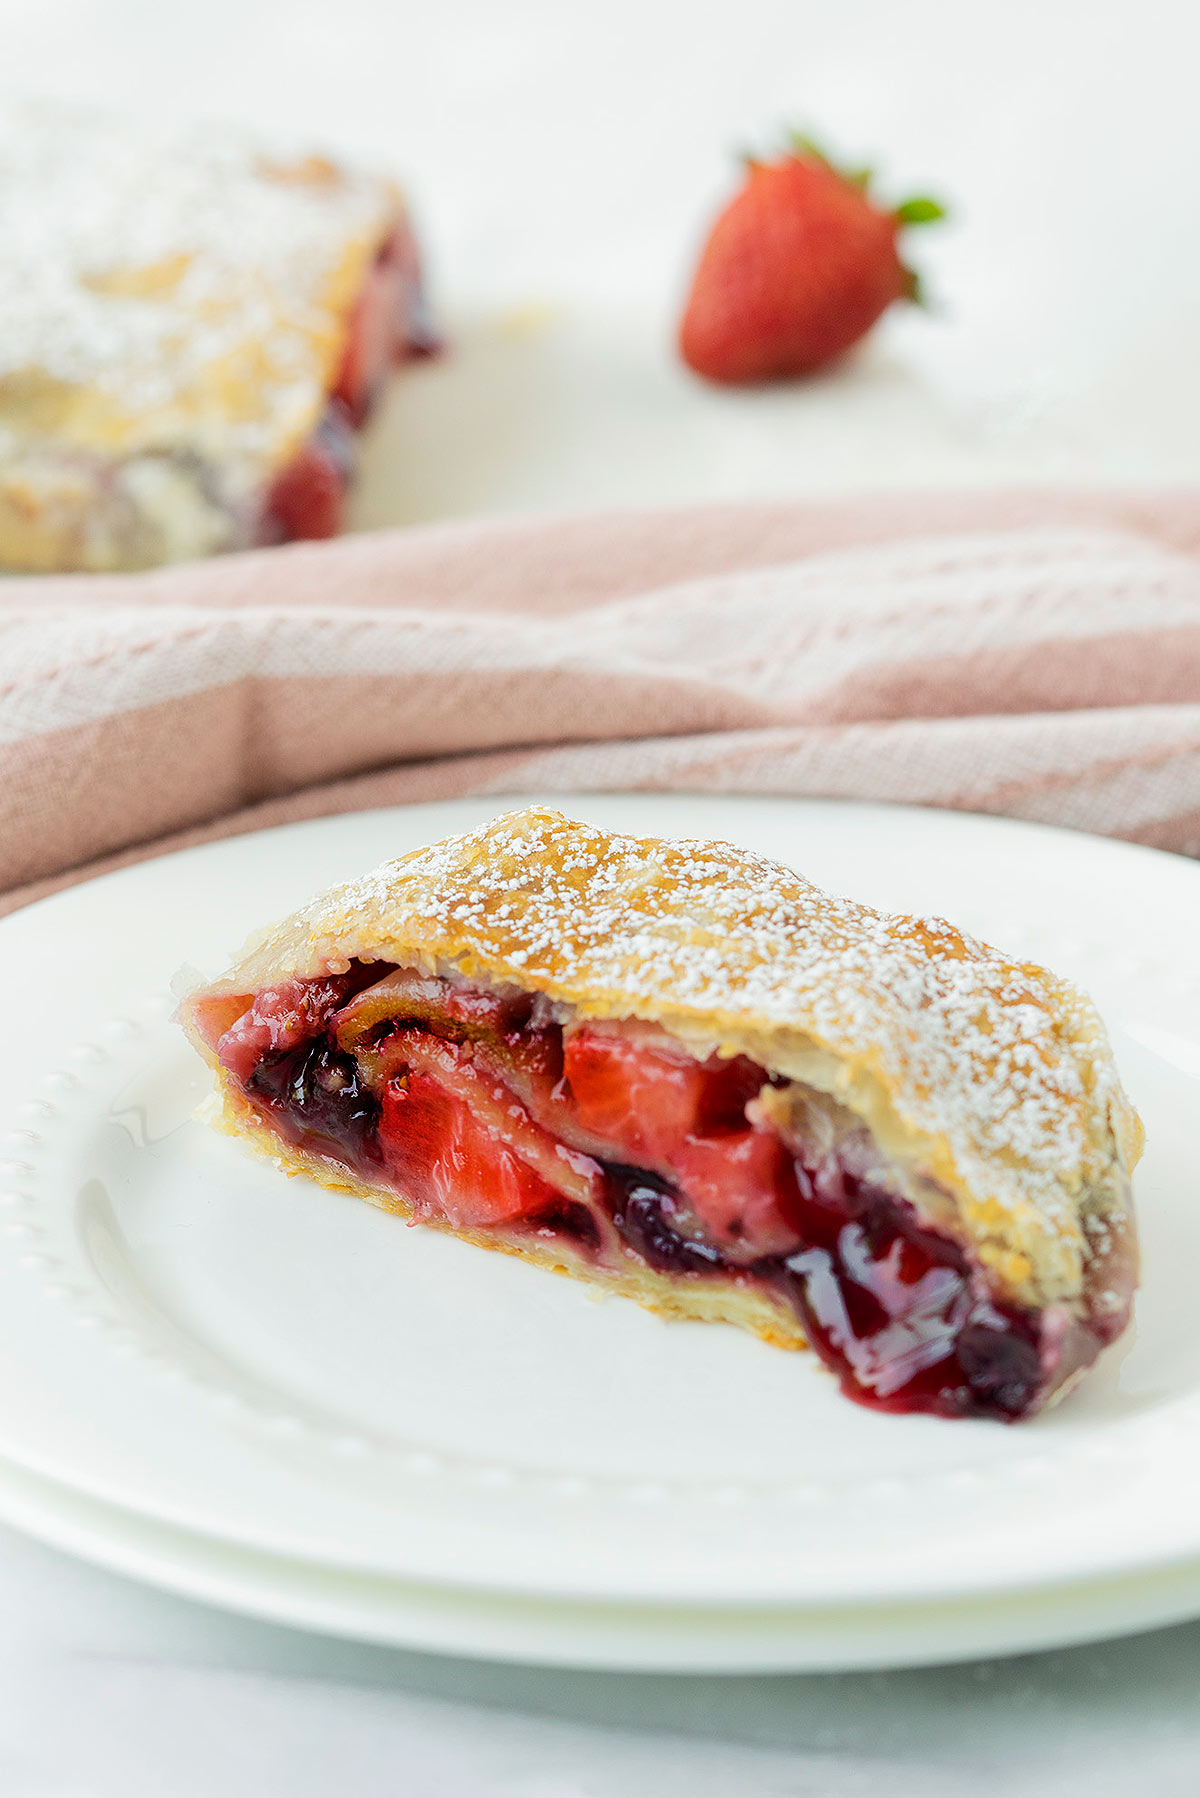 slcie of apple berry strudel on a white plate